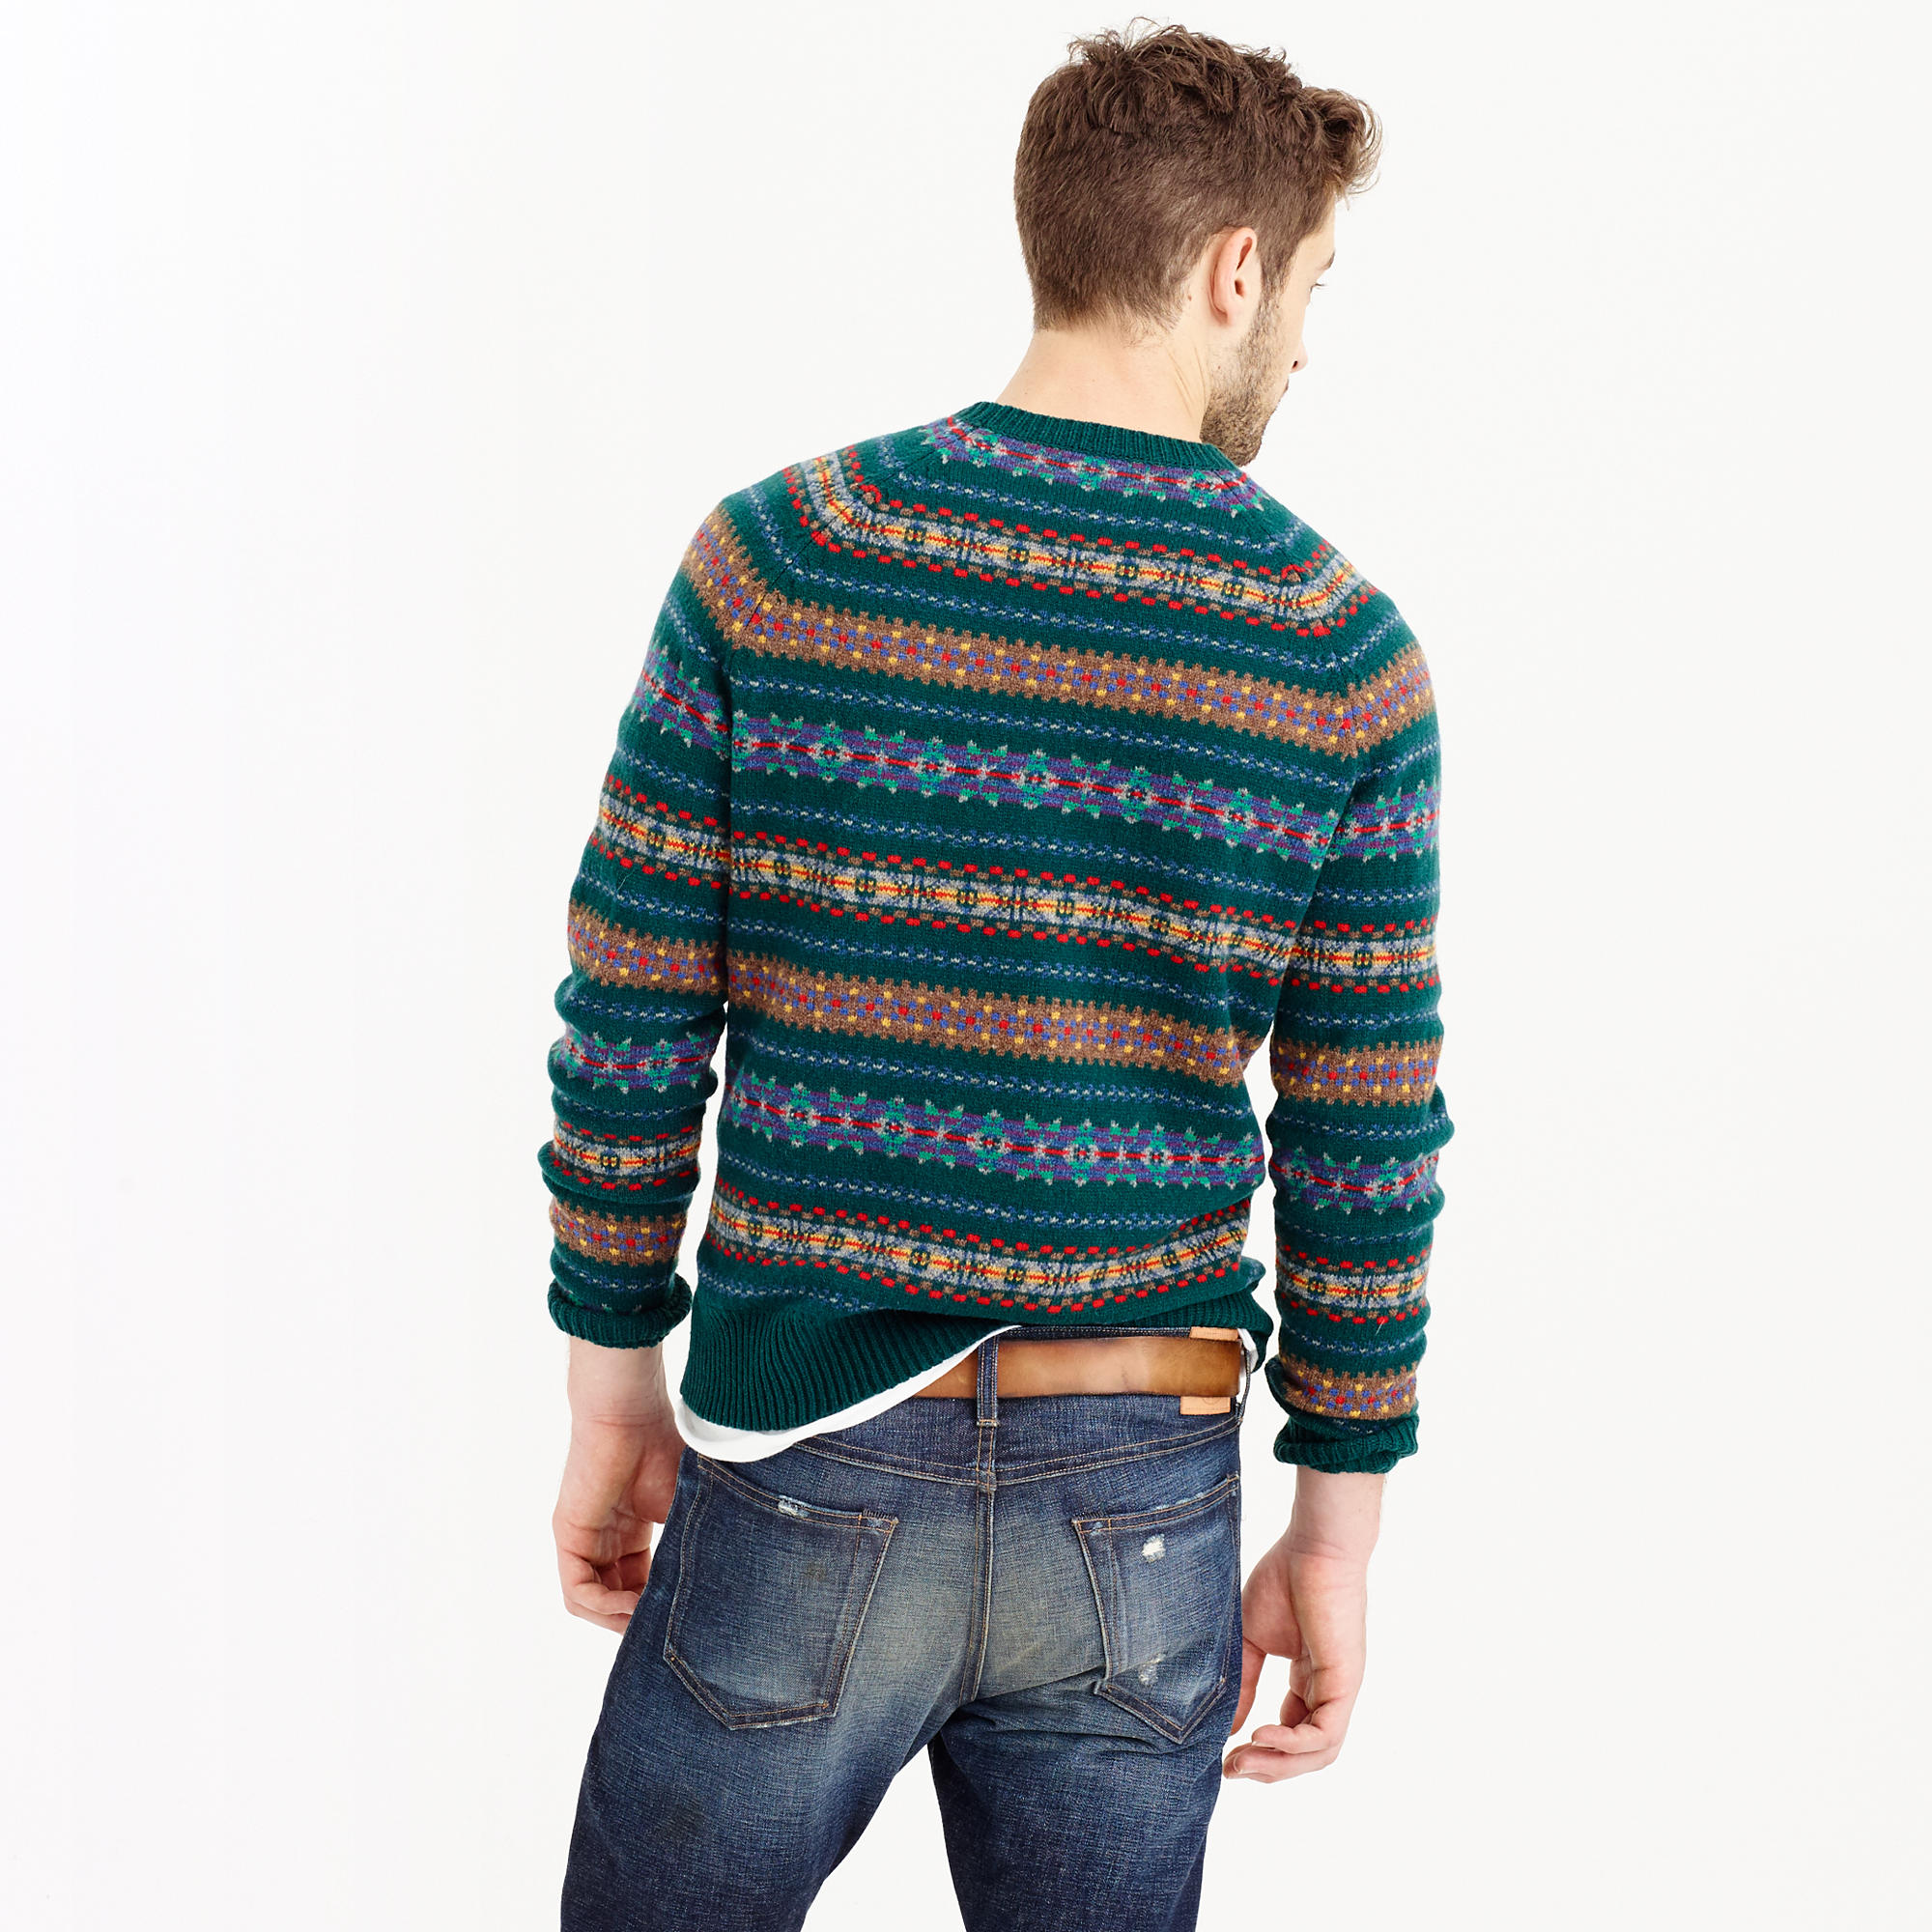 Fair Isle V Neck Sweater | Fair Isle Sweater Vest Mens | Fair Isle Sweater